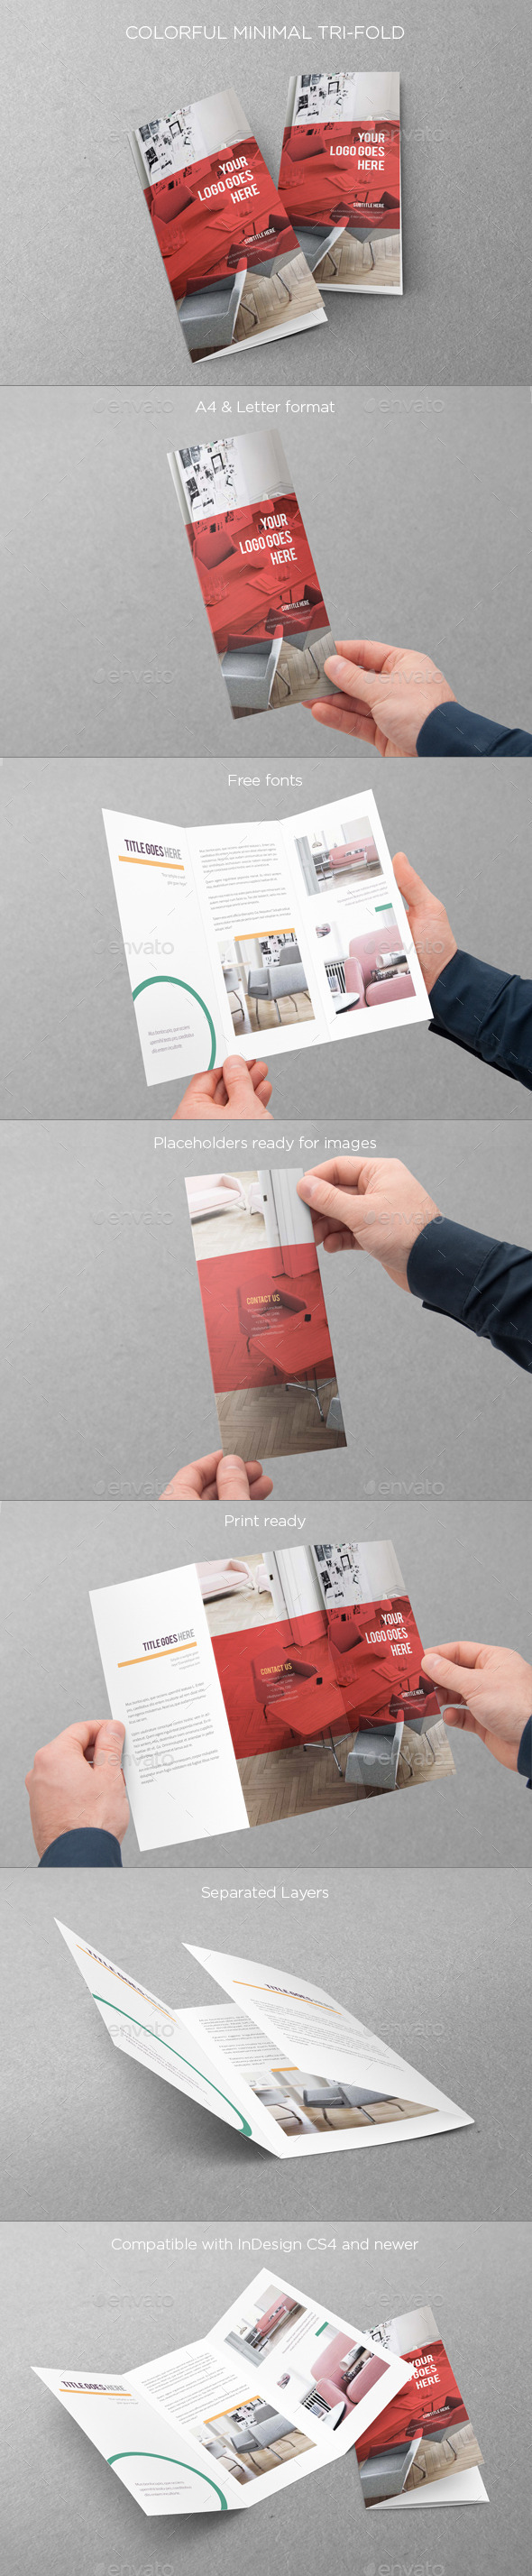 GraphicRiver Colorful Minimal Trifold 9694408